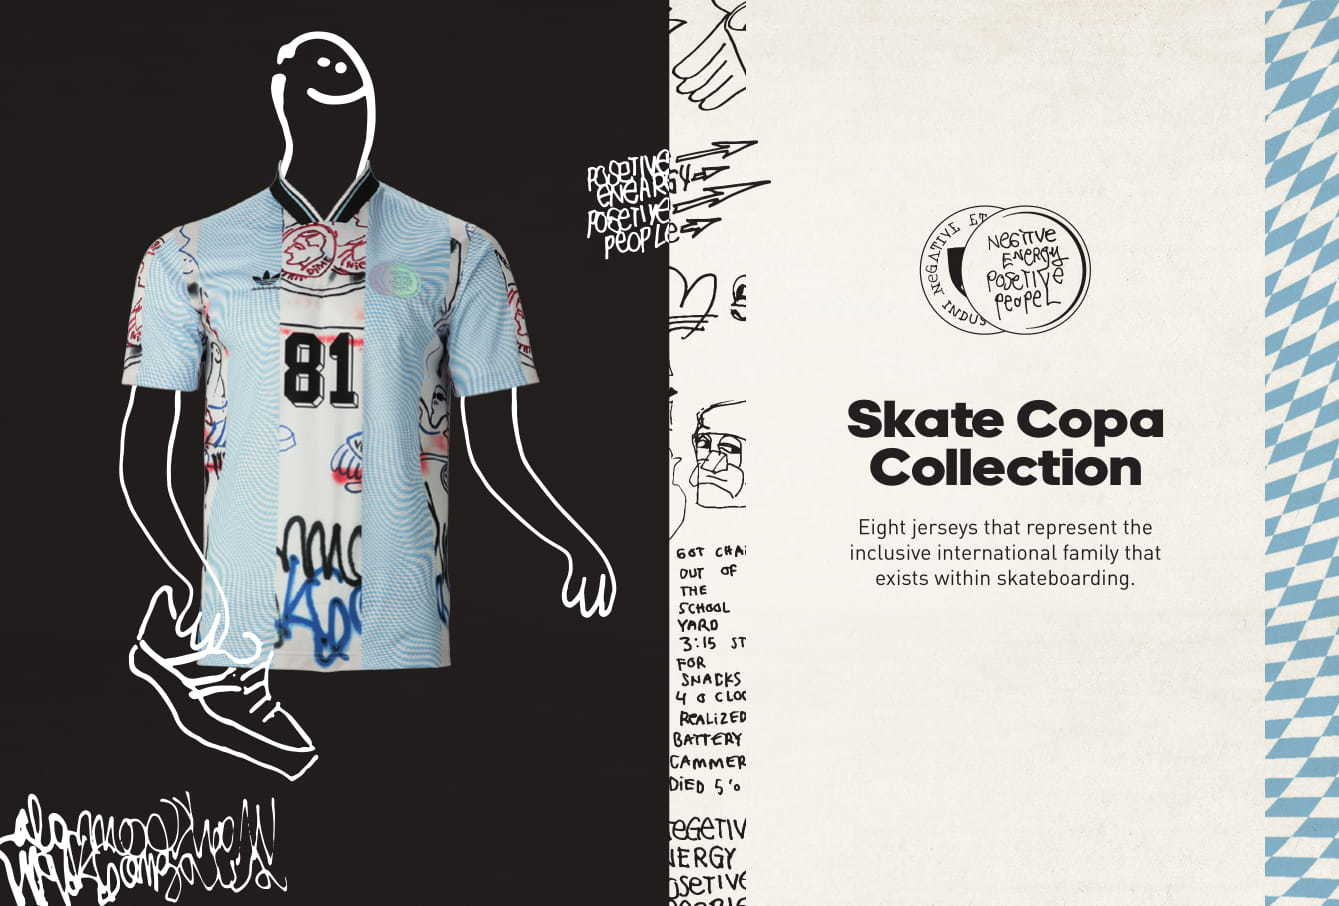 「SKATE COPA COLLECTION」